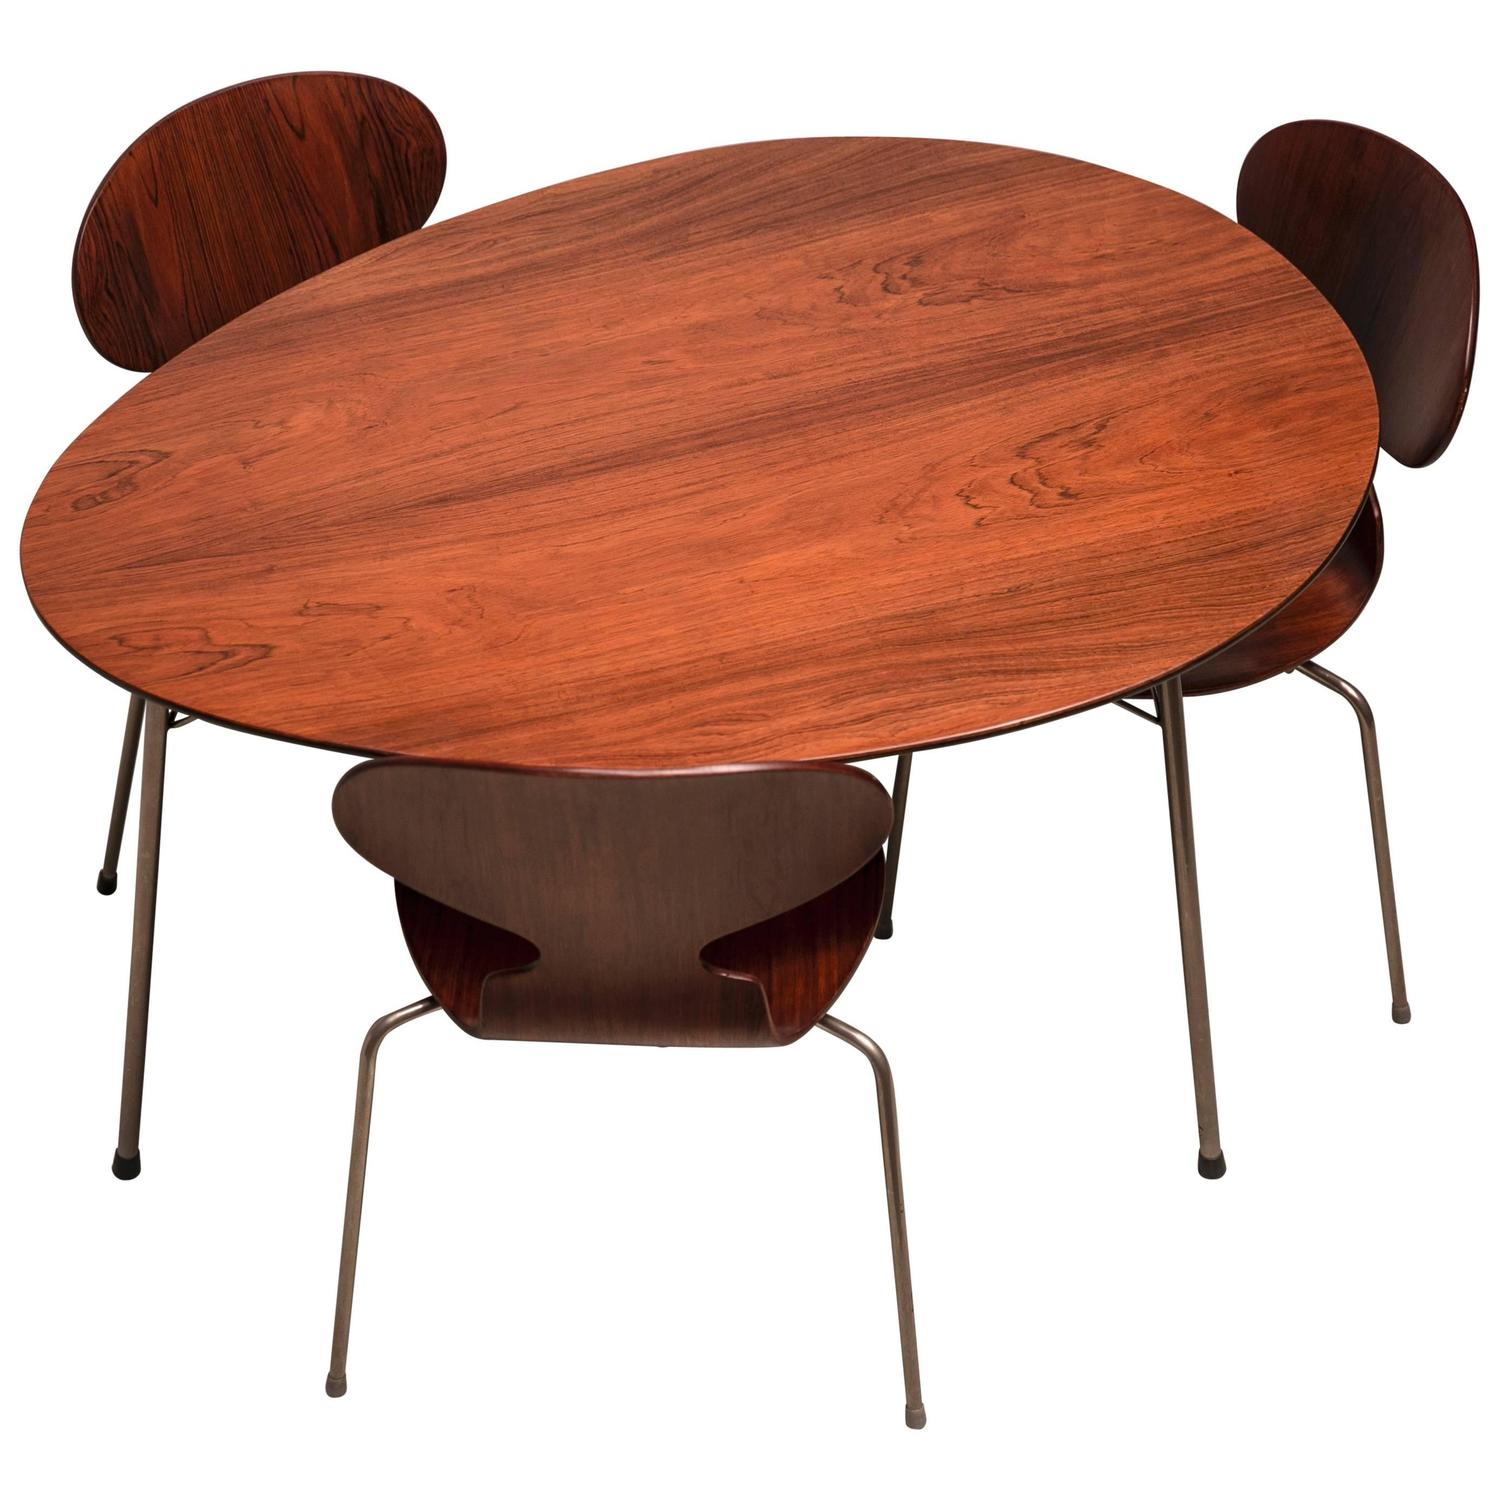 exceptional early brazilian rosewood egg table and ant chairs by arne jacobsen for sale at 1stdibs. Black Bedroom Furniture Sets. Home Design Ideas